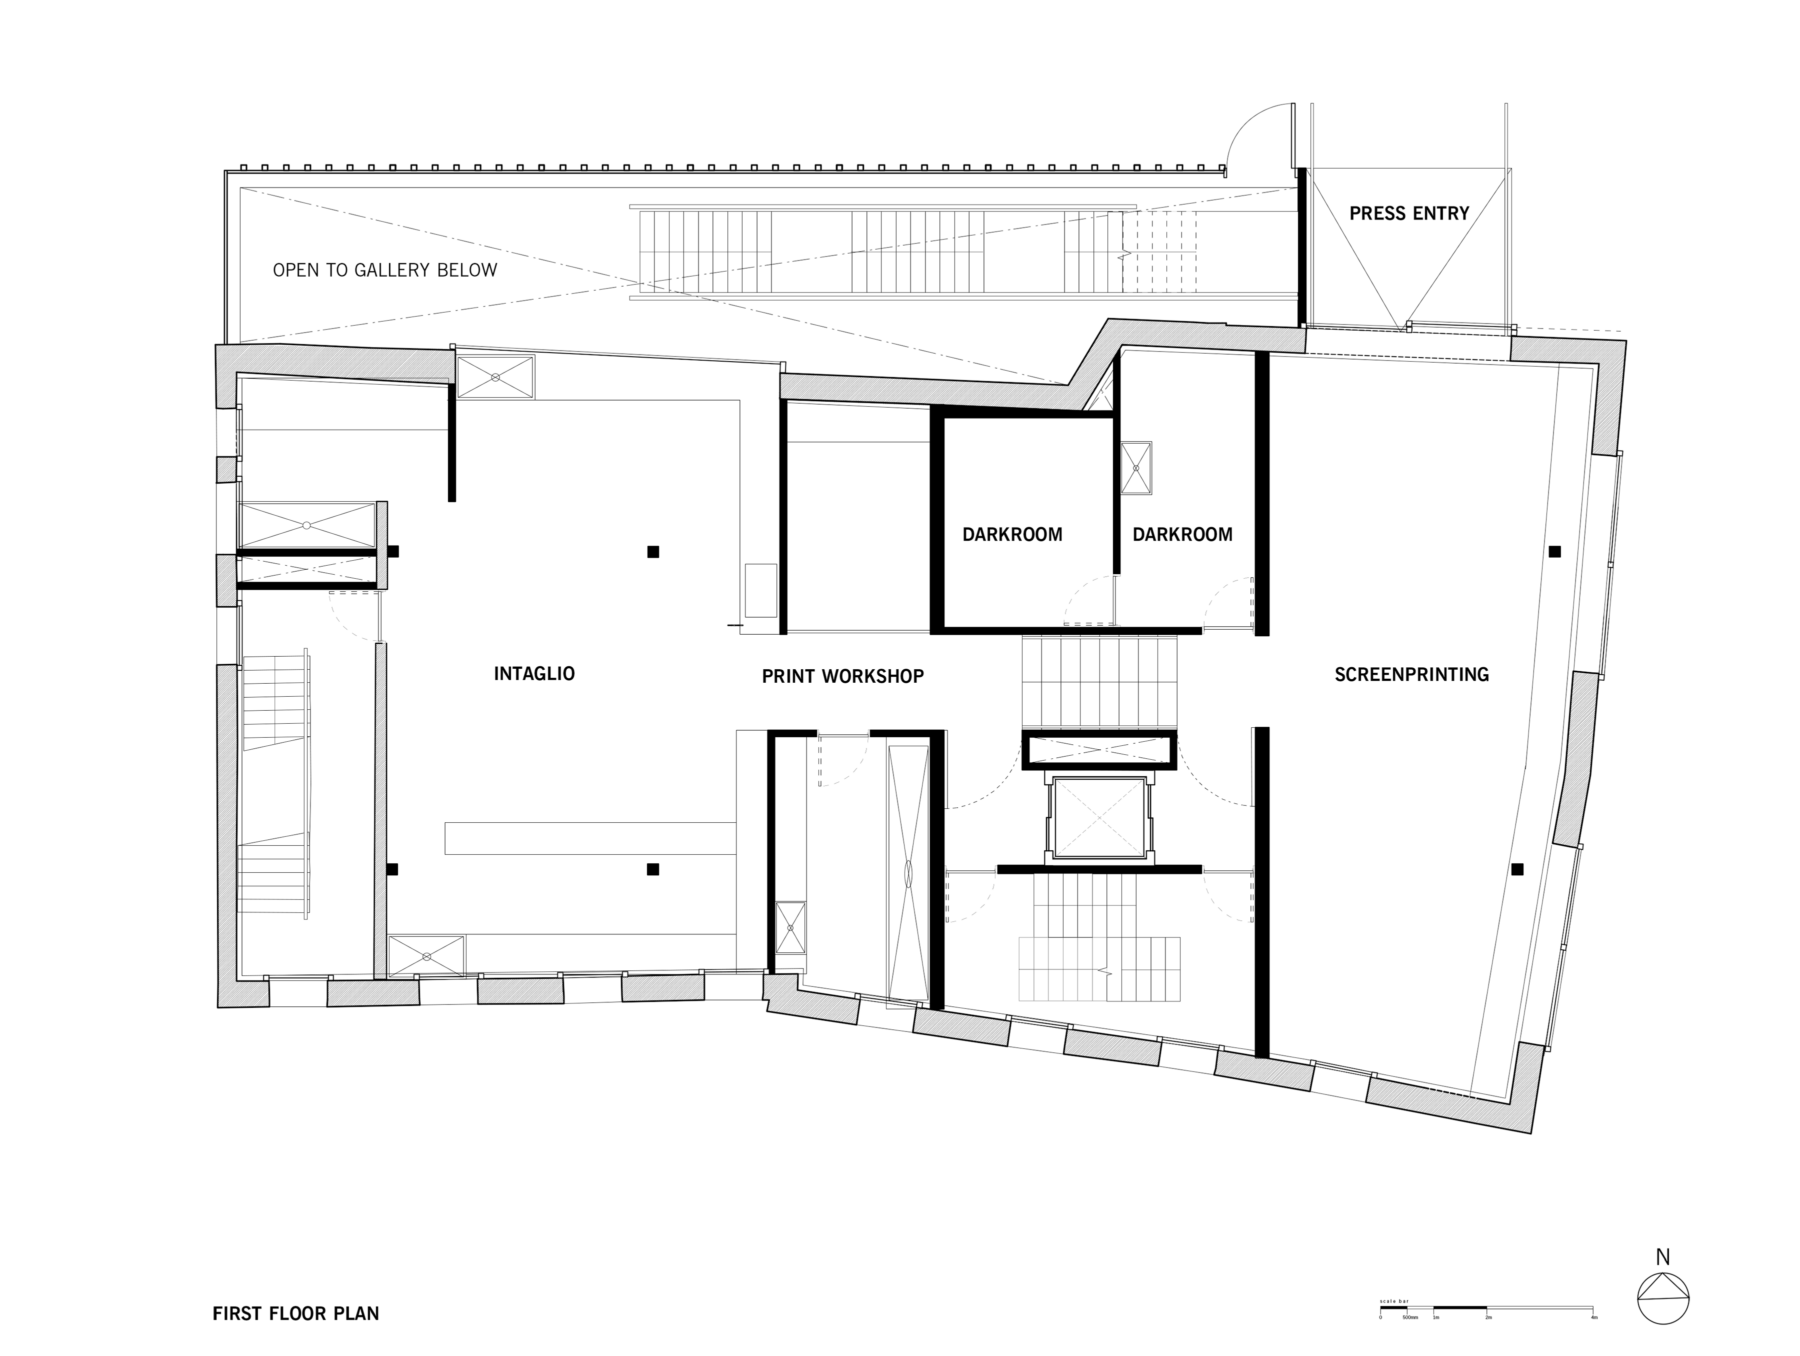 Sarah-Wigglesworth-Architects Swansea-Print-Works Drawing Plan 3600